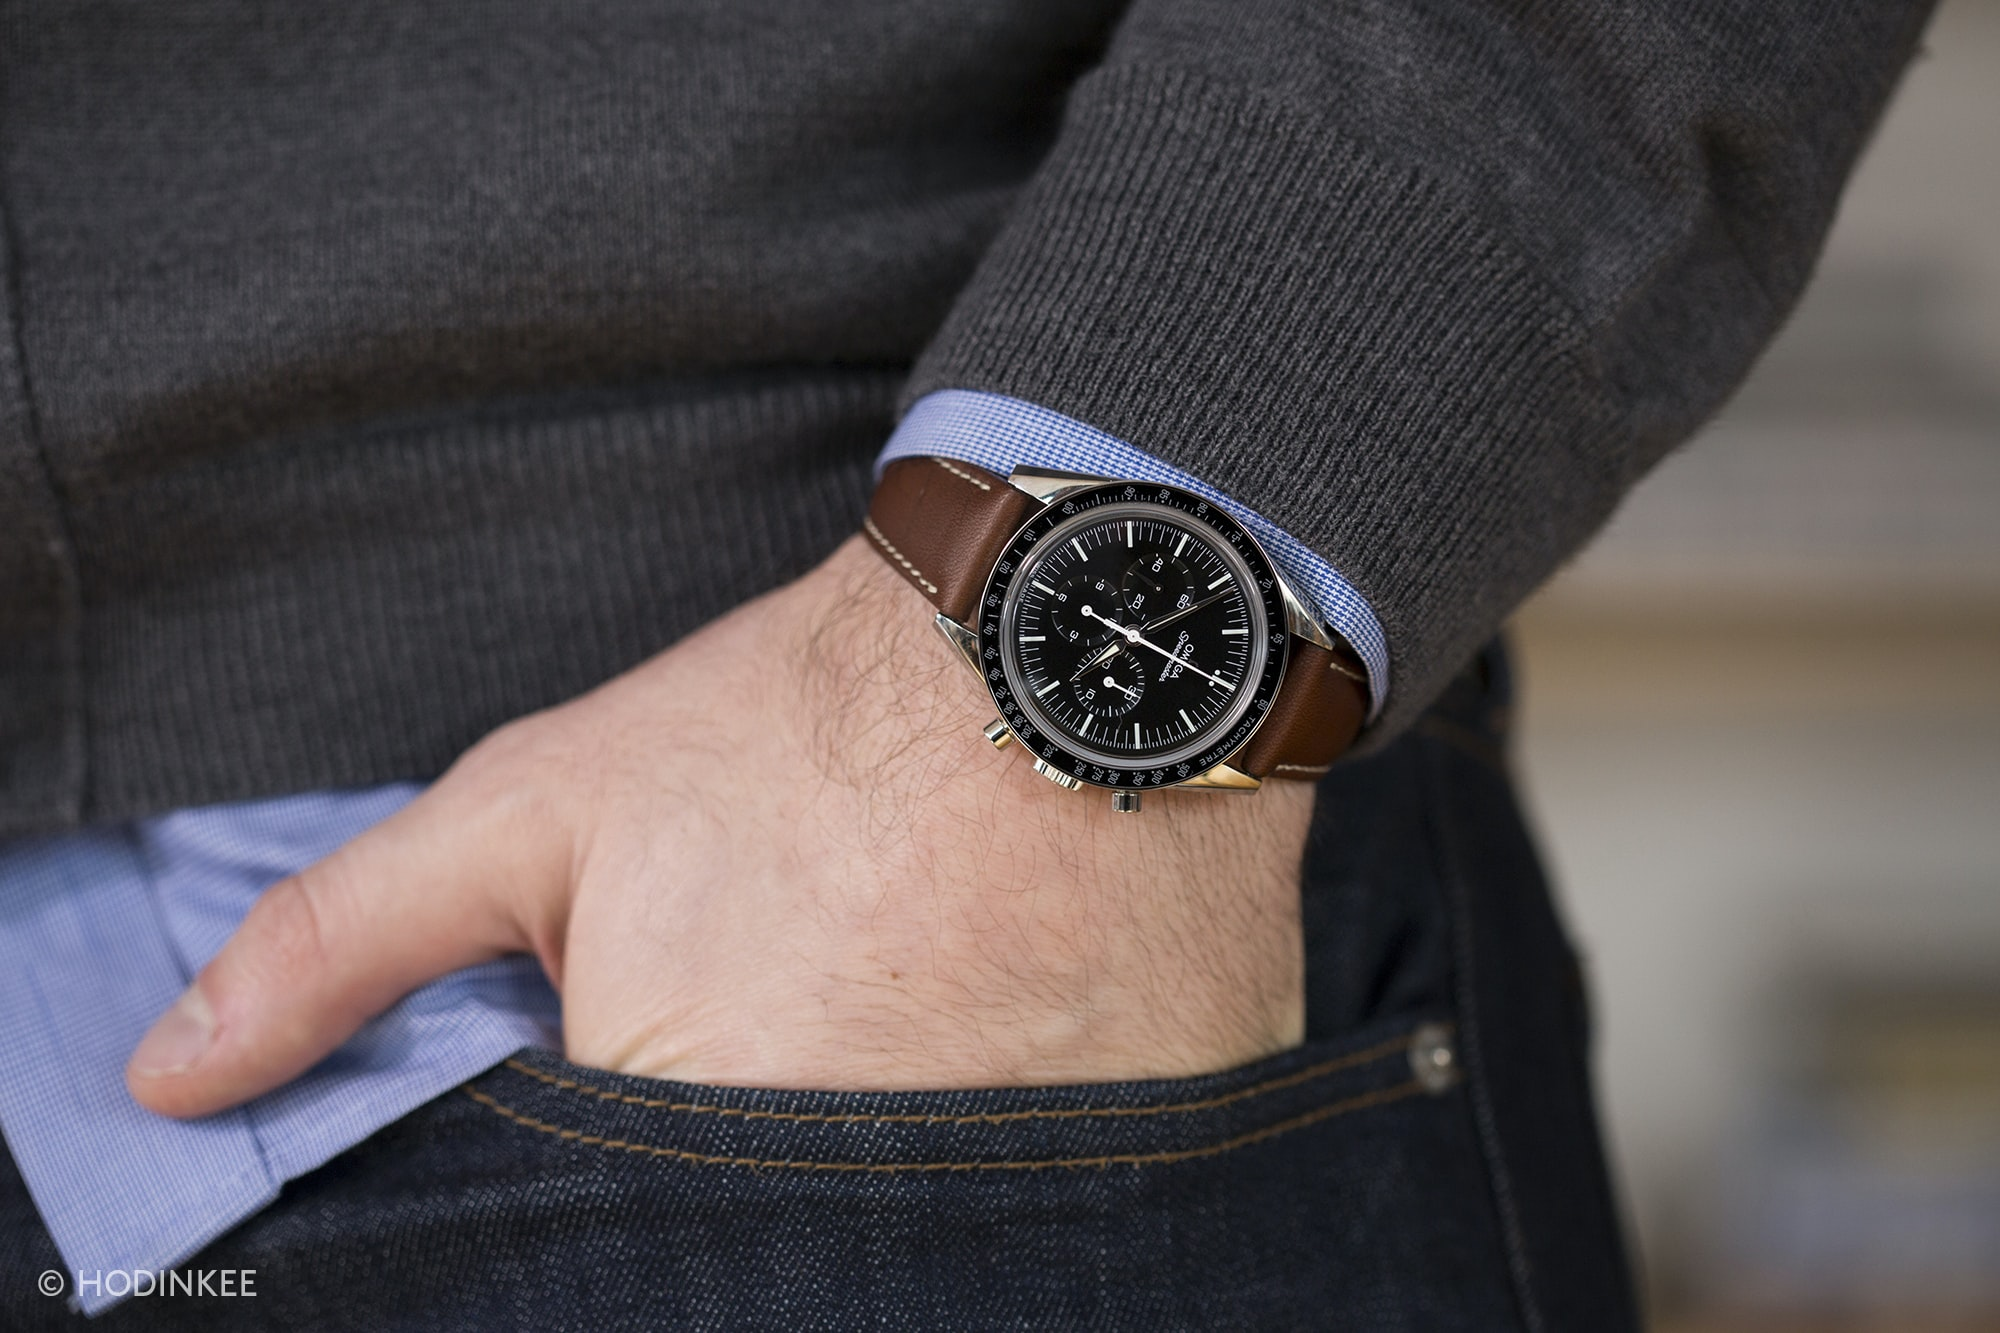 Omega Speedmaster First Omega In Space On Wrist A Week On The Wrist: The Omega Speedmaster 'First Omega In Space' A Week On The Wrist: The Omega Speedmaster 'First Omega In Space' AAA Omega FOIS 1